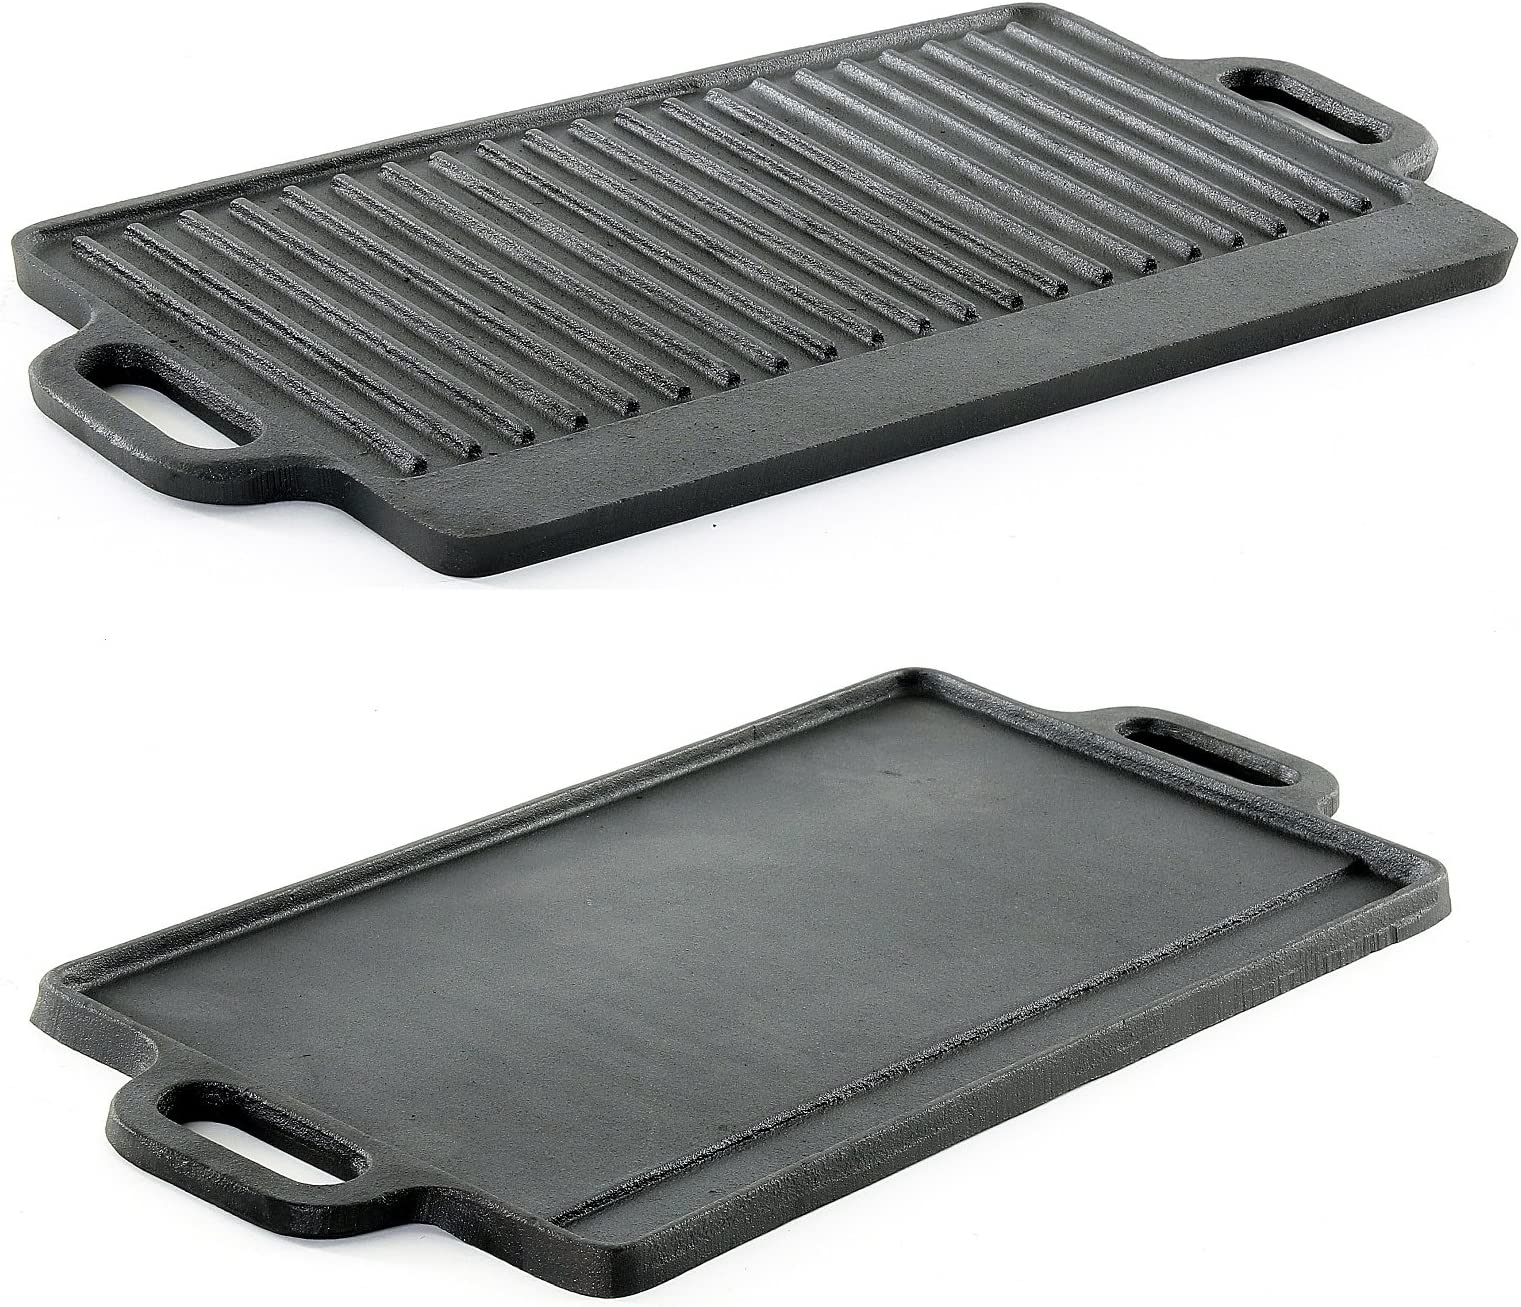 ProSource Professional Heavy Duty Reversible Double Burner Cast Iron Grill Griddle, 20 by 9-Inch, Black